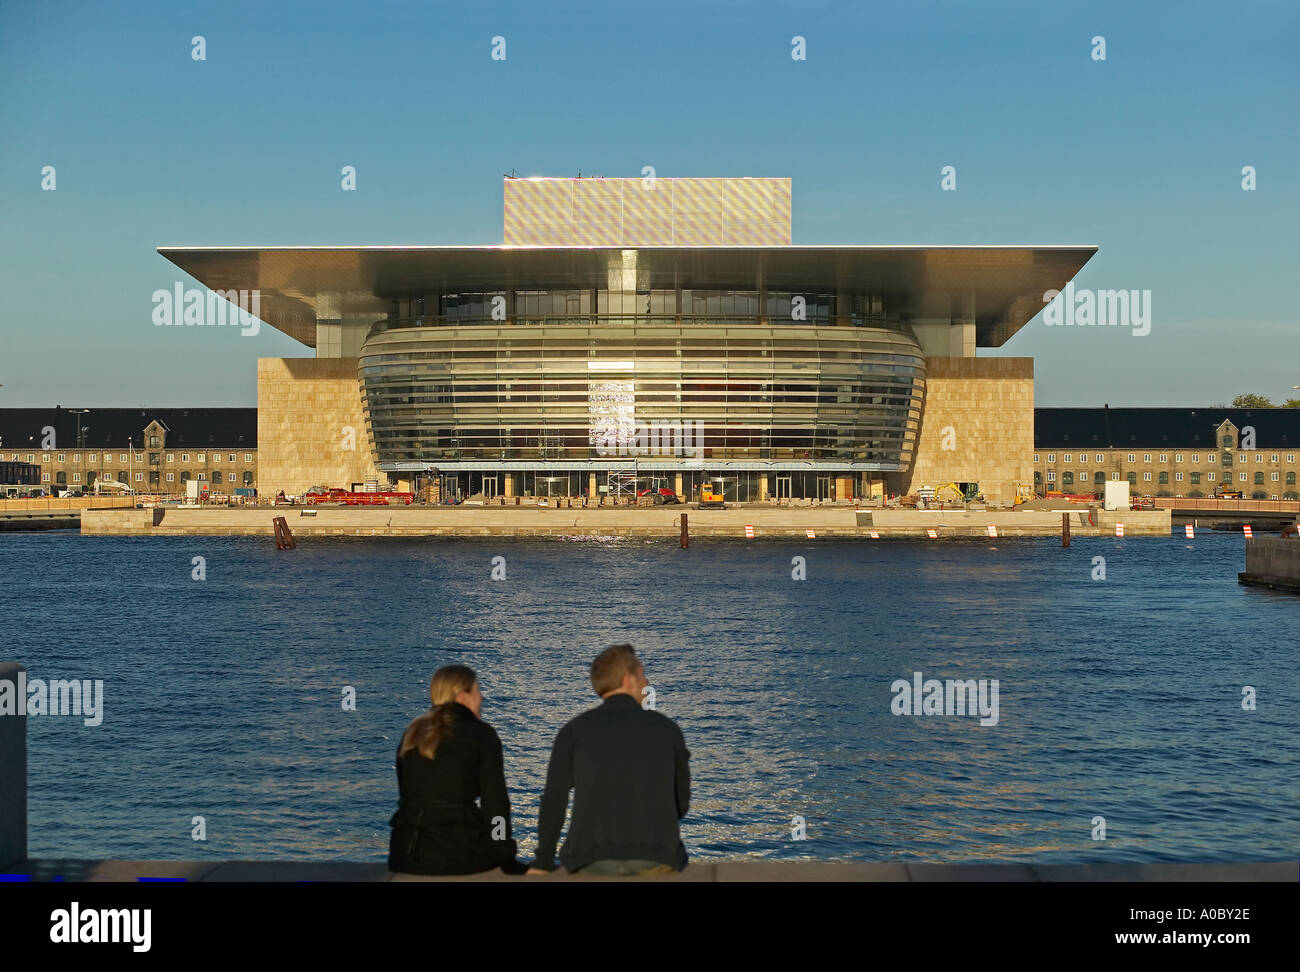 Couple in front of opera house building at sunset, Copenhagen, Denmark Europe - Stock Image